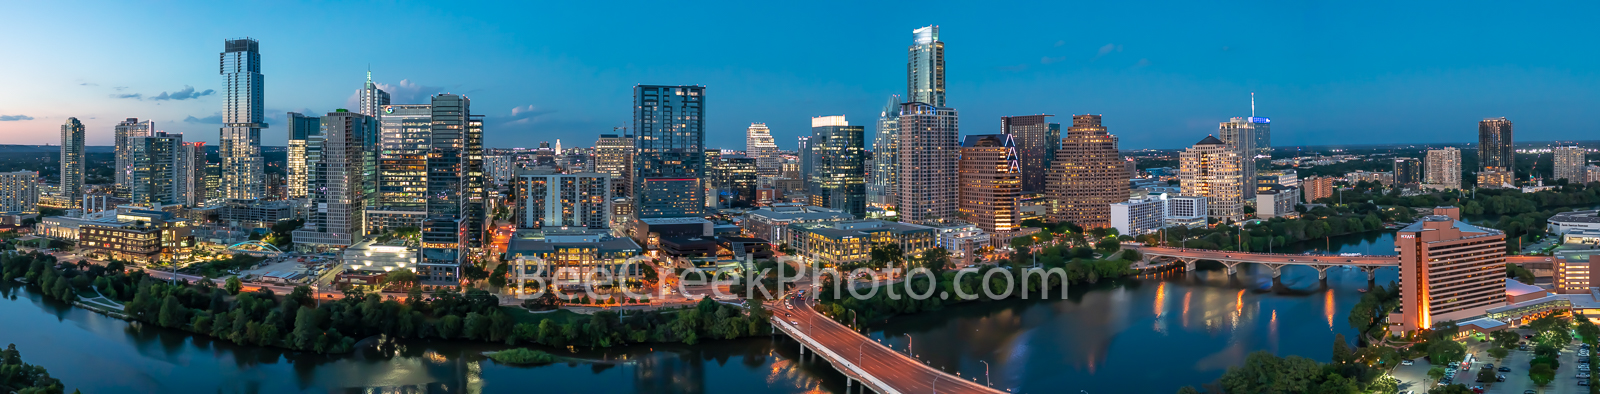 Austin Skyline twilight, Austin, skyline, aerial,twilight, blue hour,  lady bird lake, hike and bike trail, cityscape, wide panorama, water, pano, panorama, tallest building, Independent, Jingle, Goog, photo